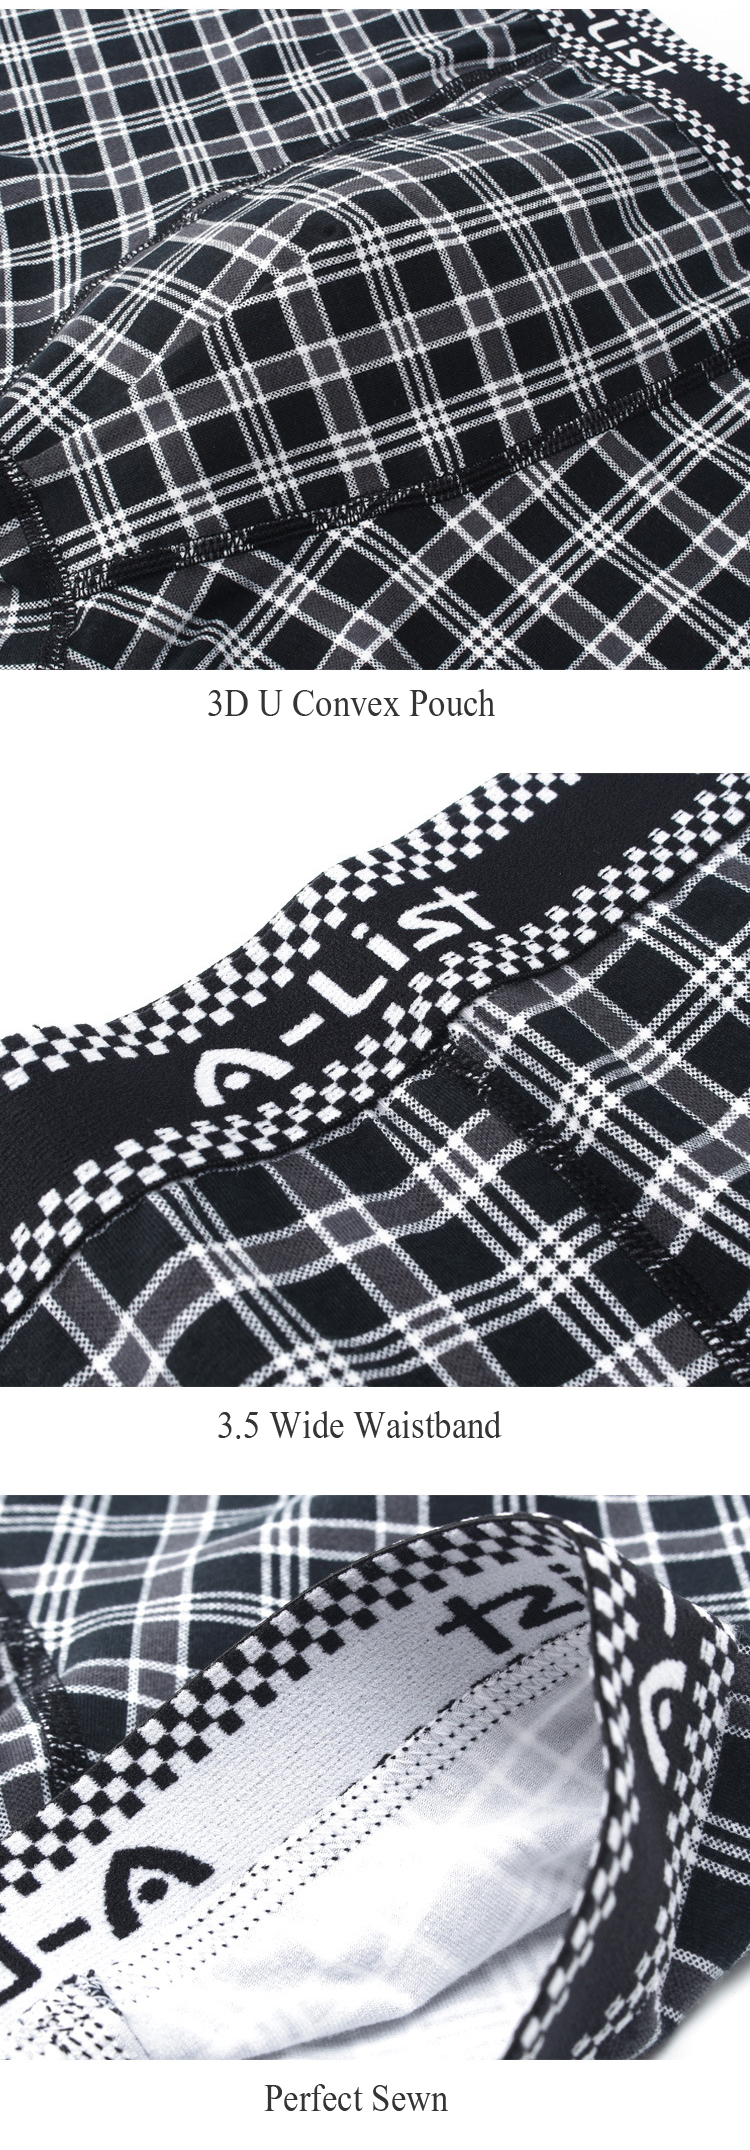 Mens Black White Plaid Printing Casual U Convex Underwear